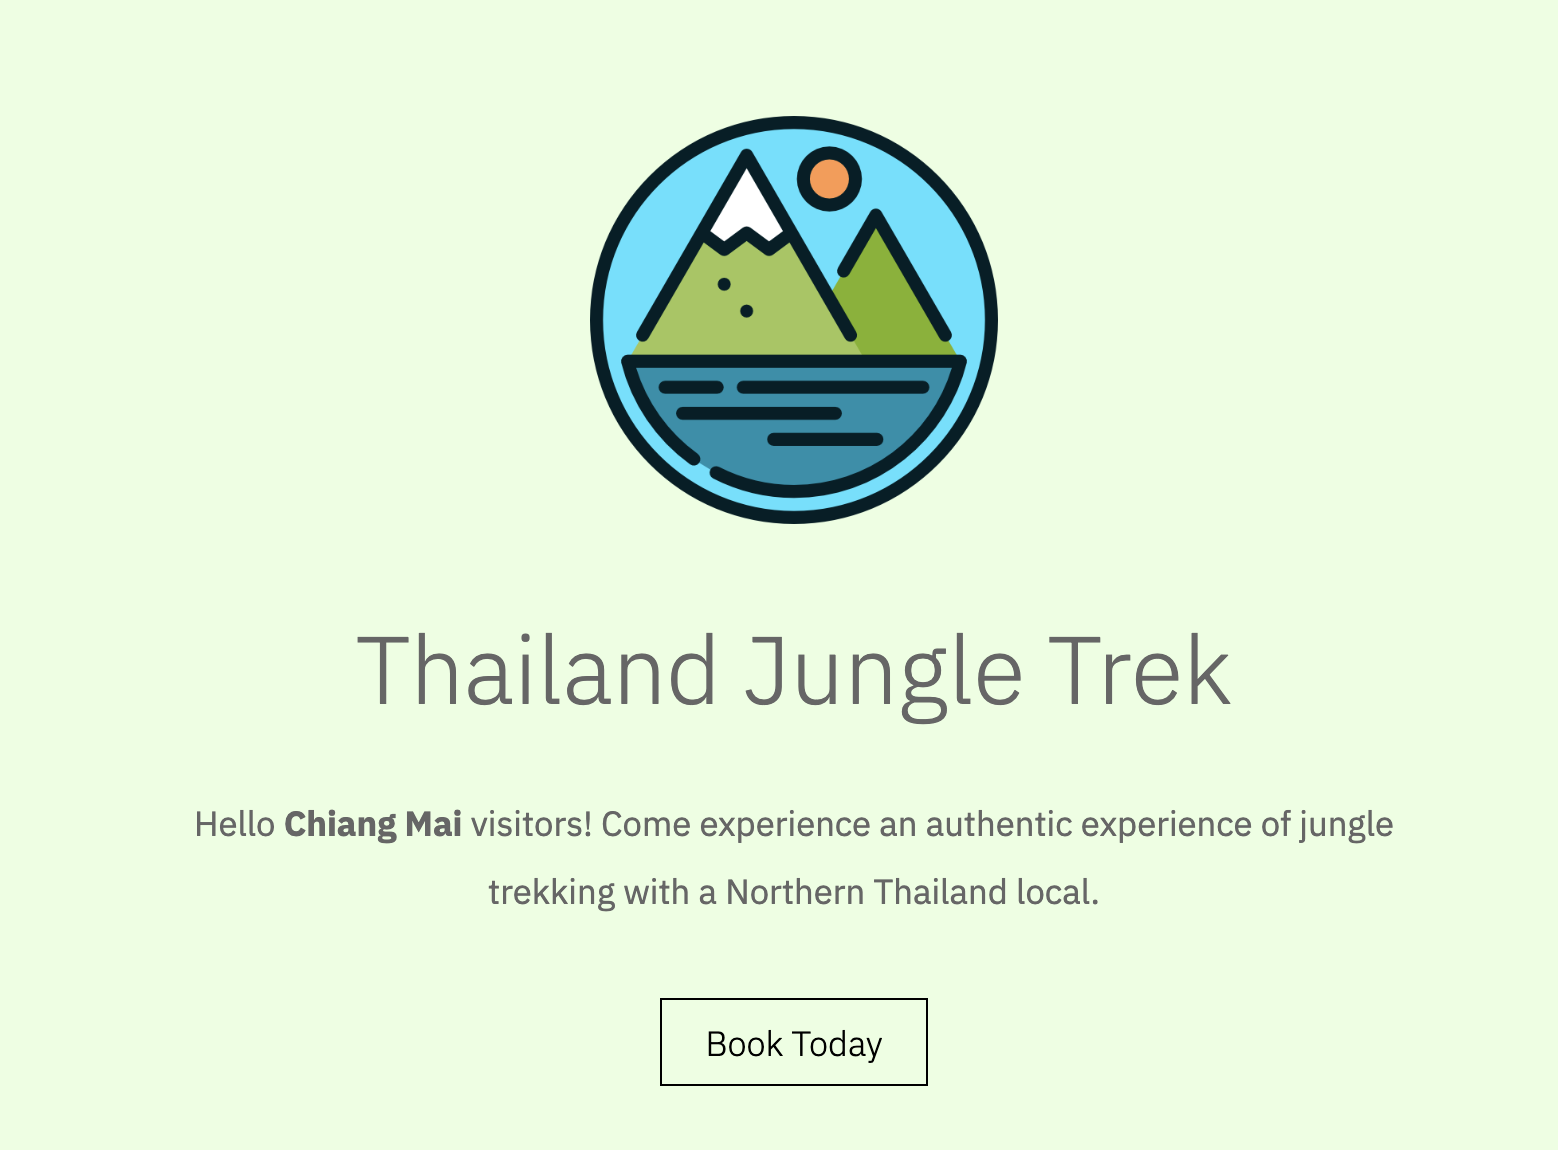 [thailandjungletrek.com](https://thailandjungletrek.com)